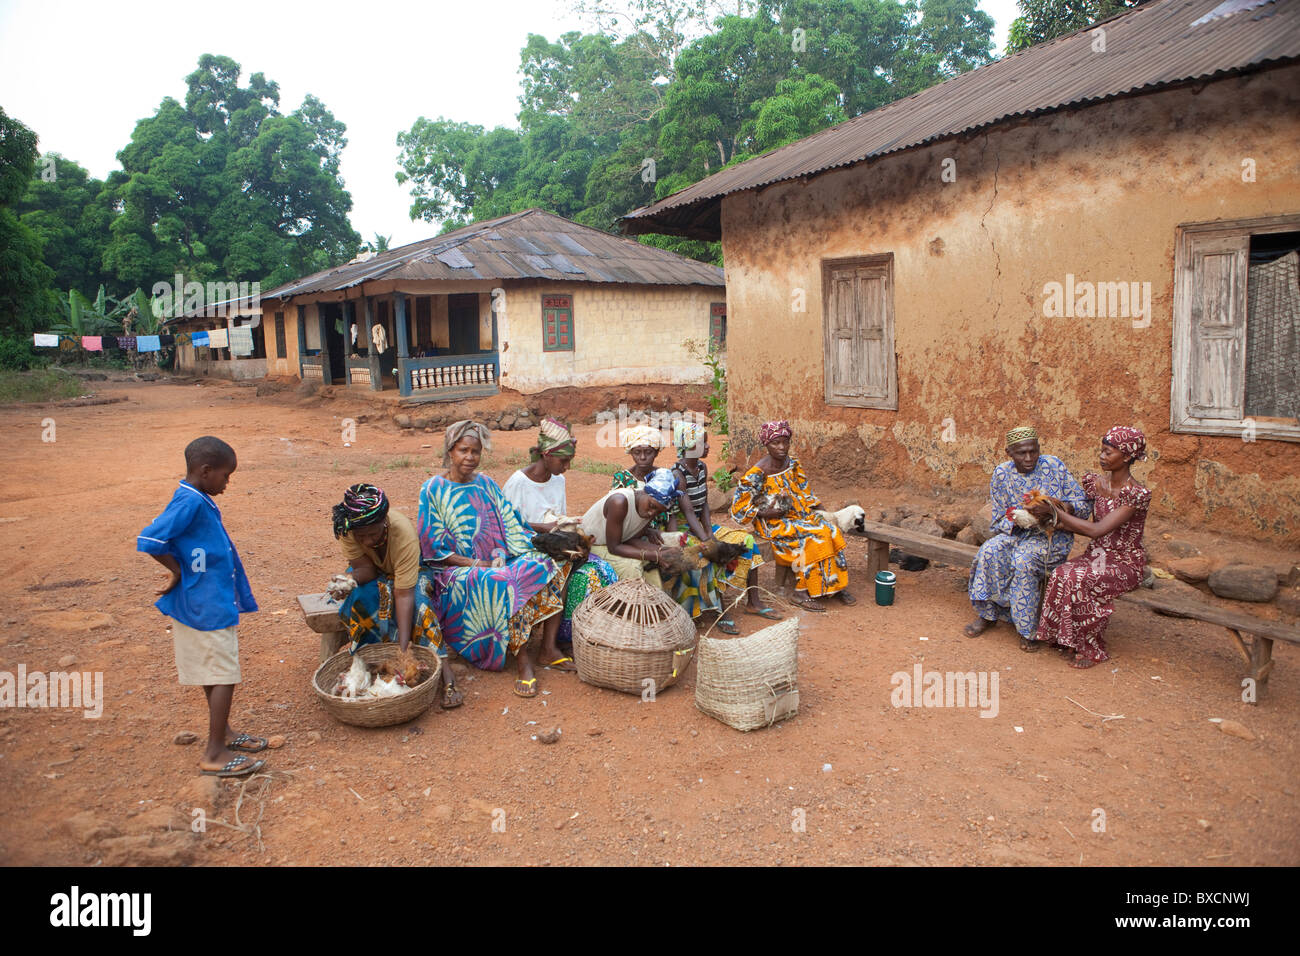 Villagers gather to receive vaccinations for their chickens in Port Loko, Sierra Leone, West Africa. Stock Photo